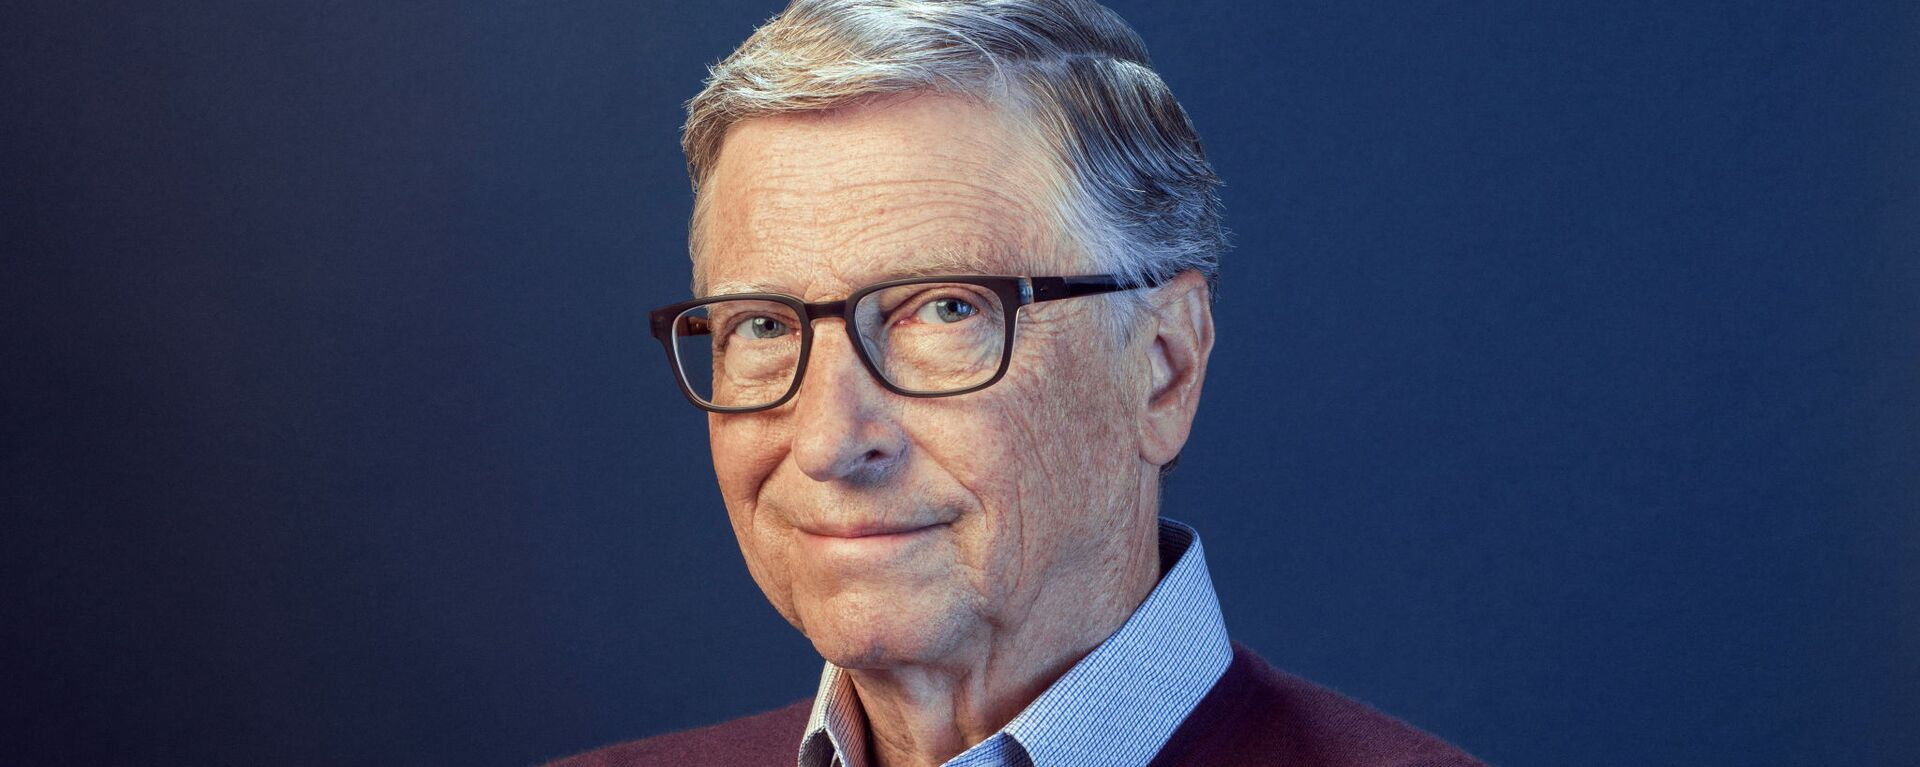 Bill Gates poses in this undated handout photo obtained by Reuters on February 15, 2021 - Sputnik Italia, 1920, 11.09.2021